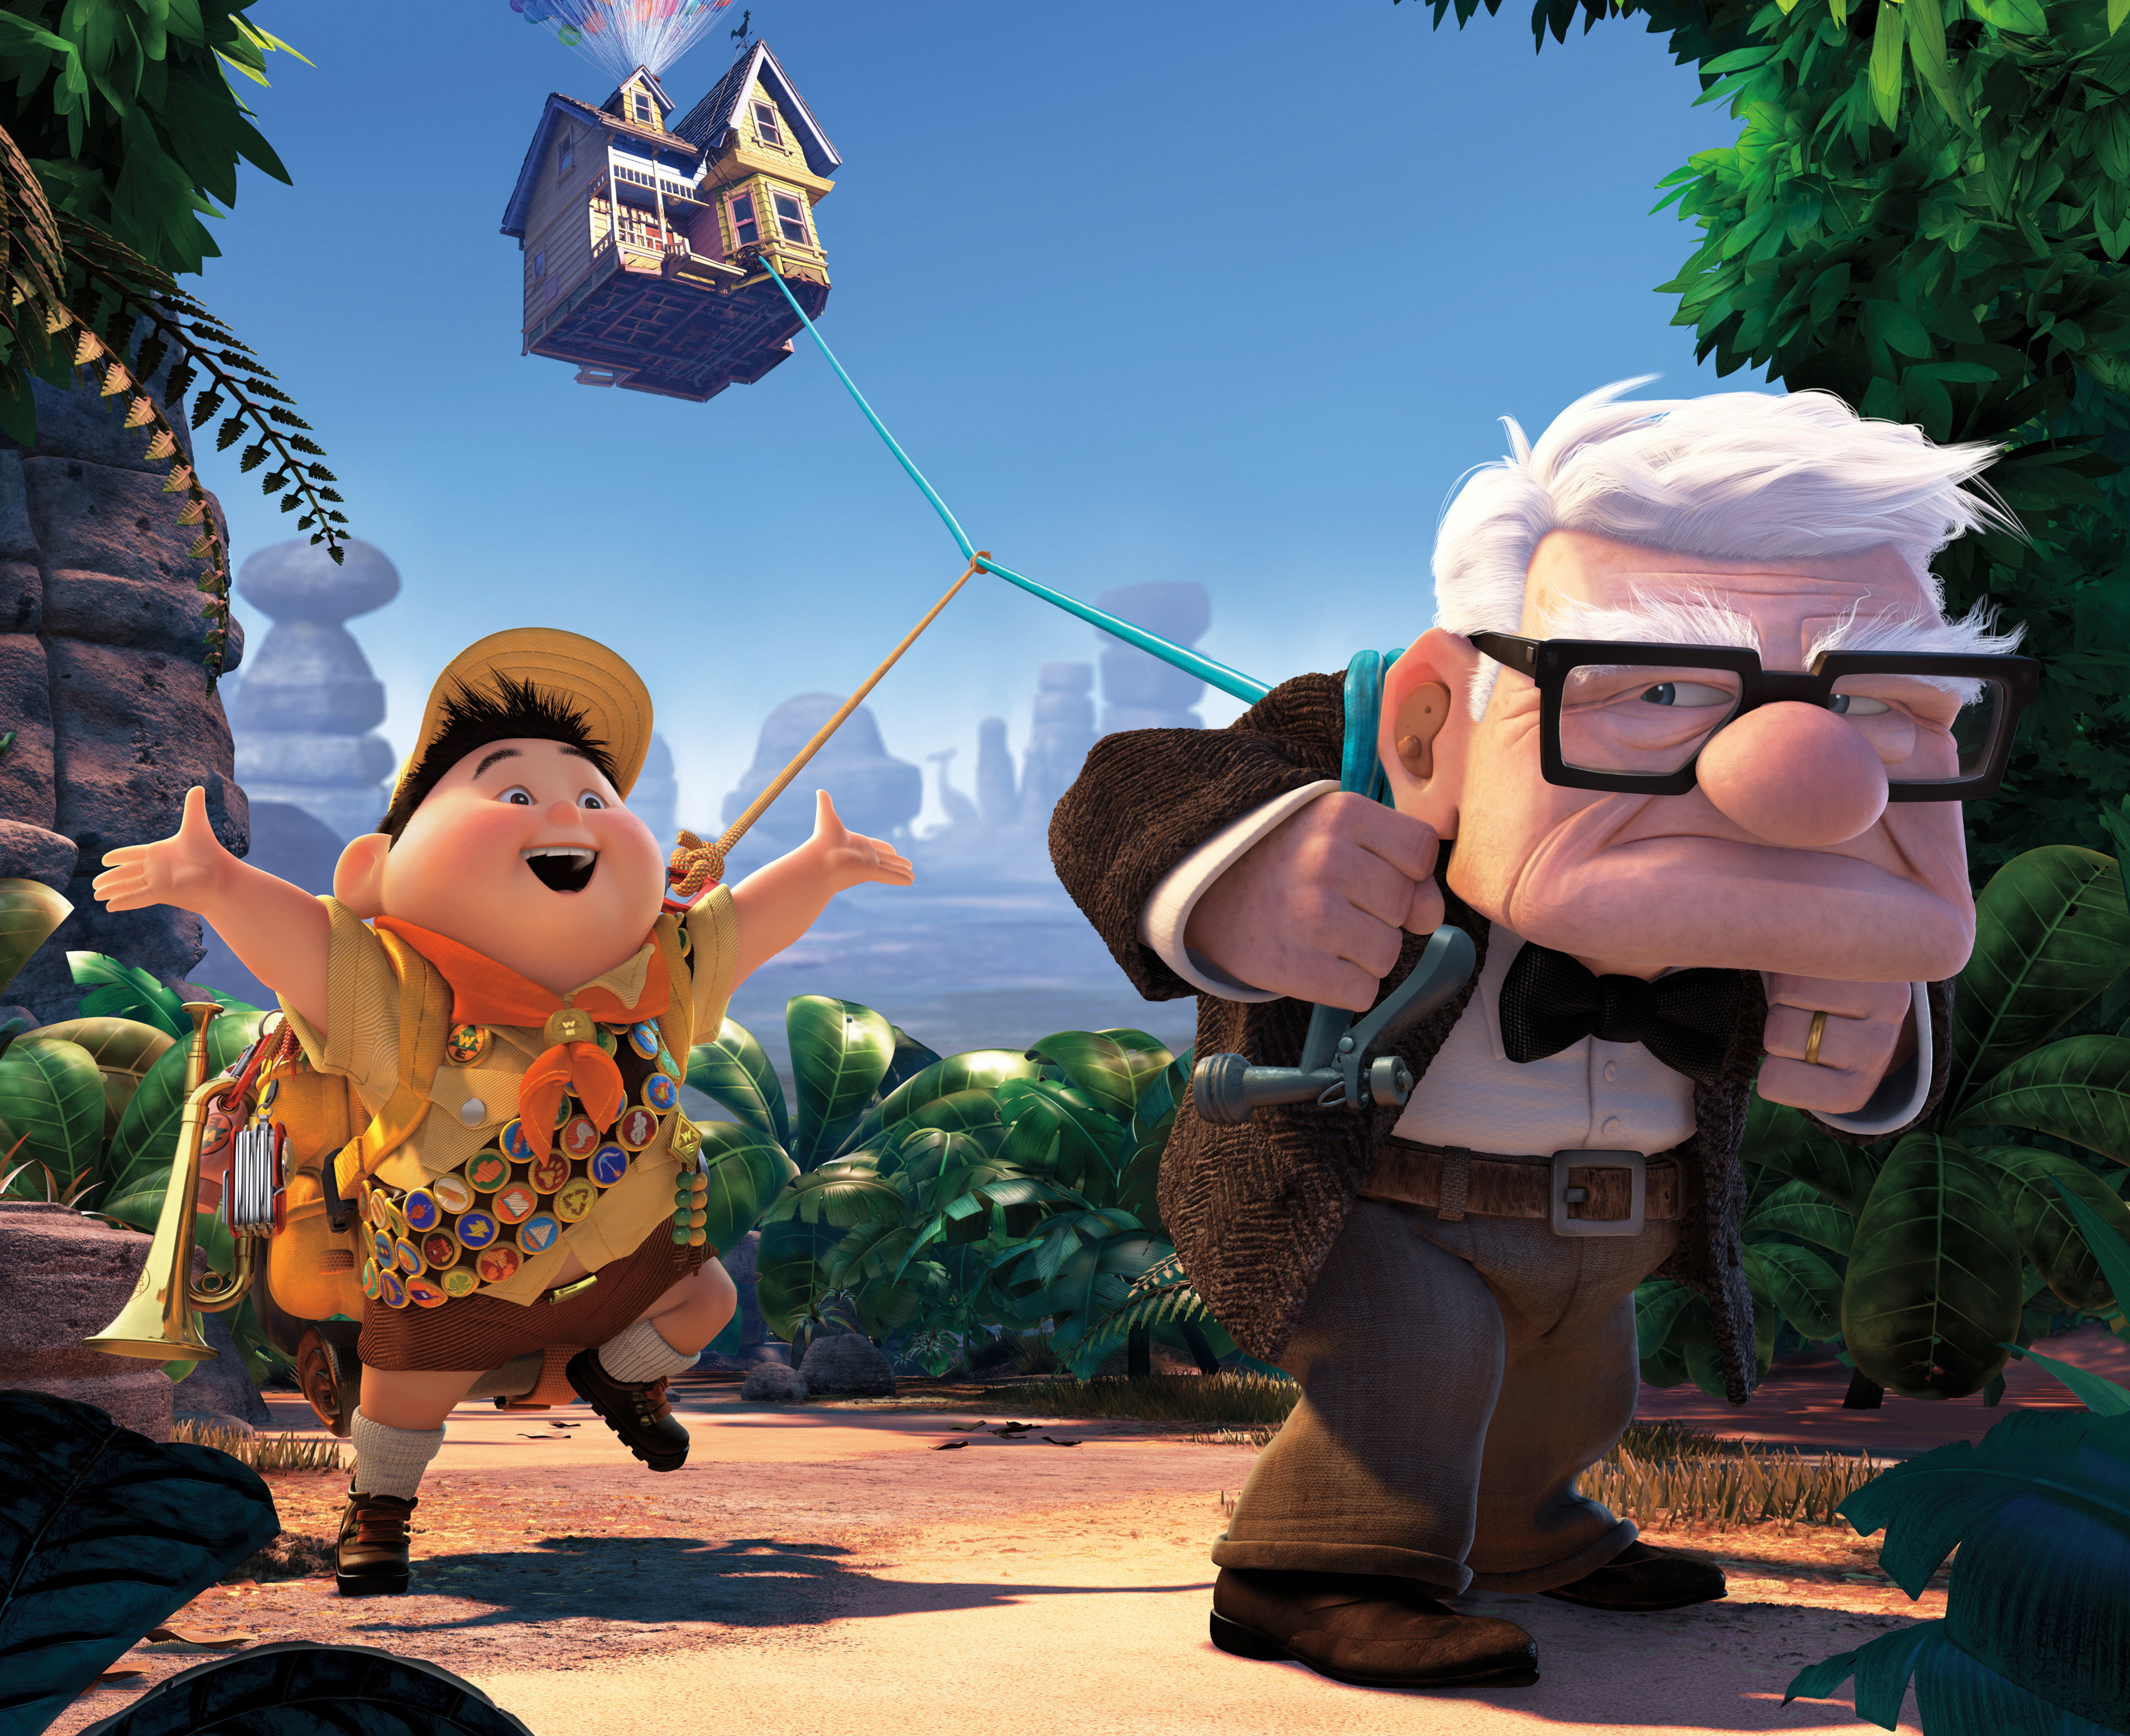 Ed Asner voices a grumpy old man who flies to South America in 'Up'